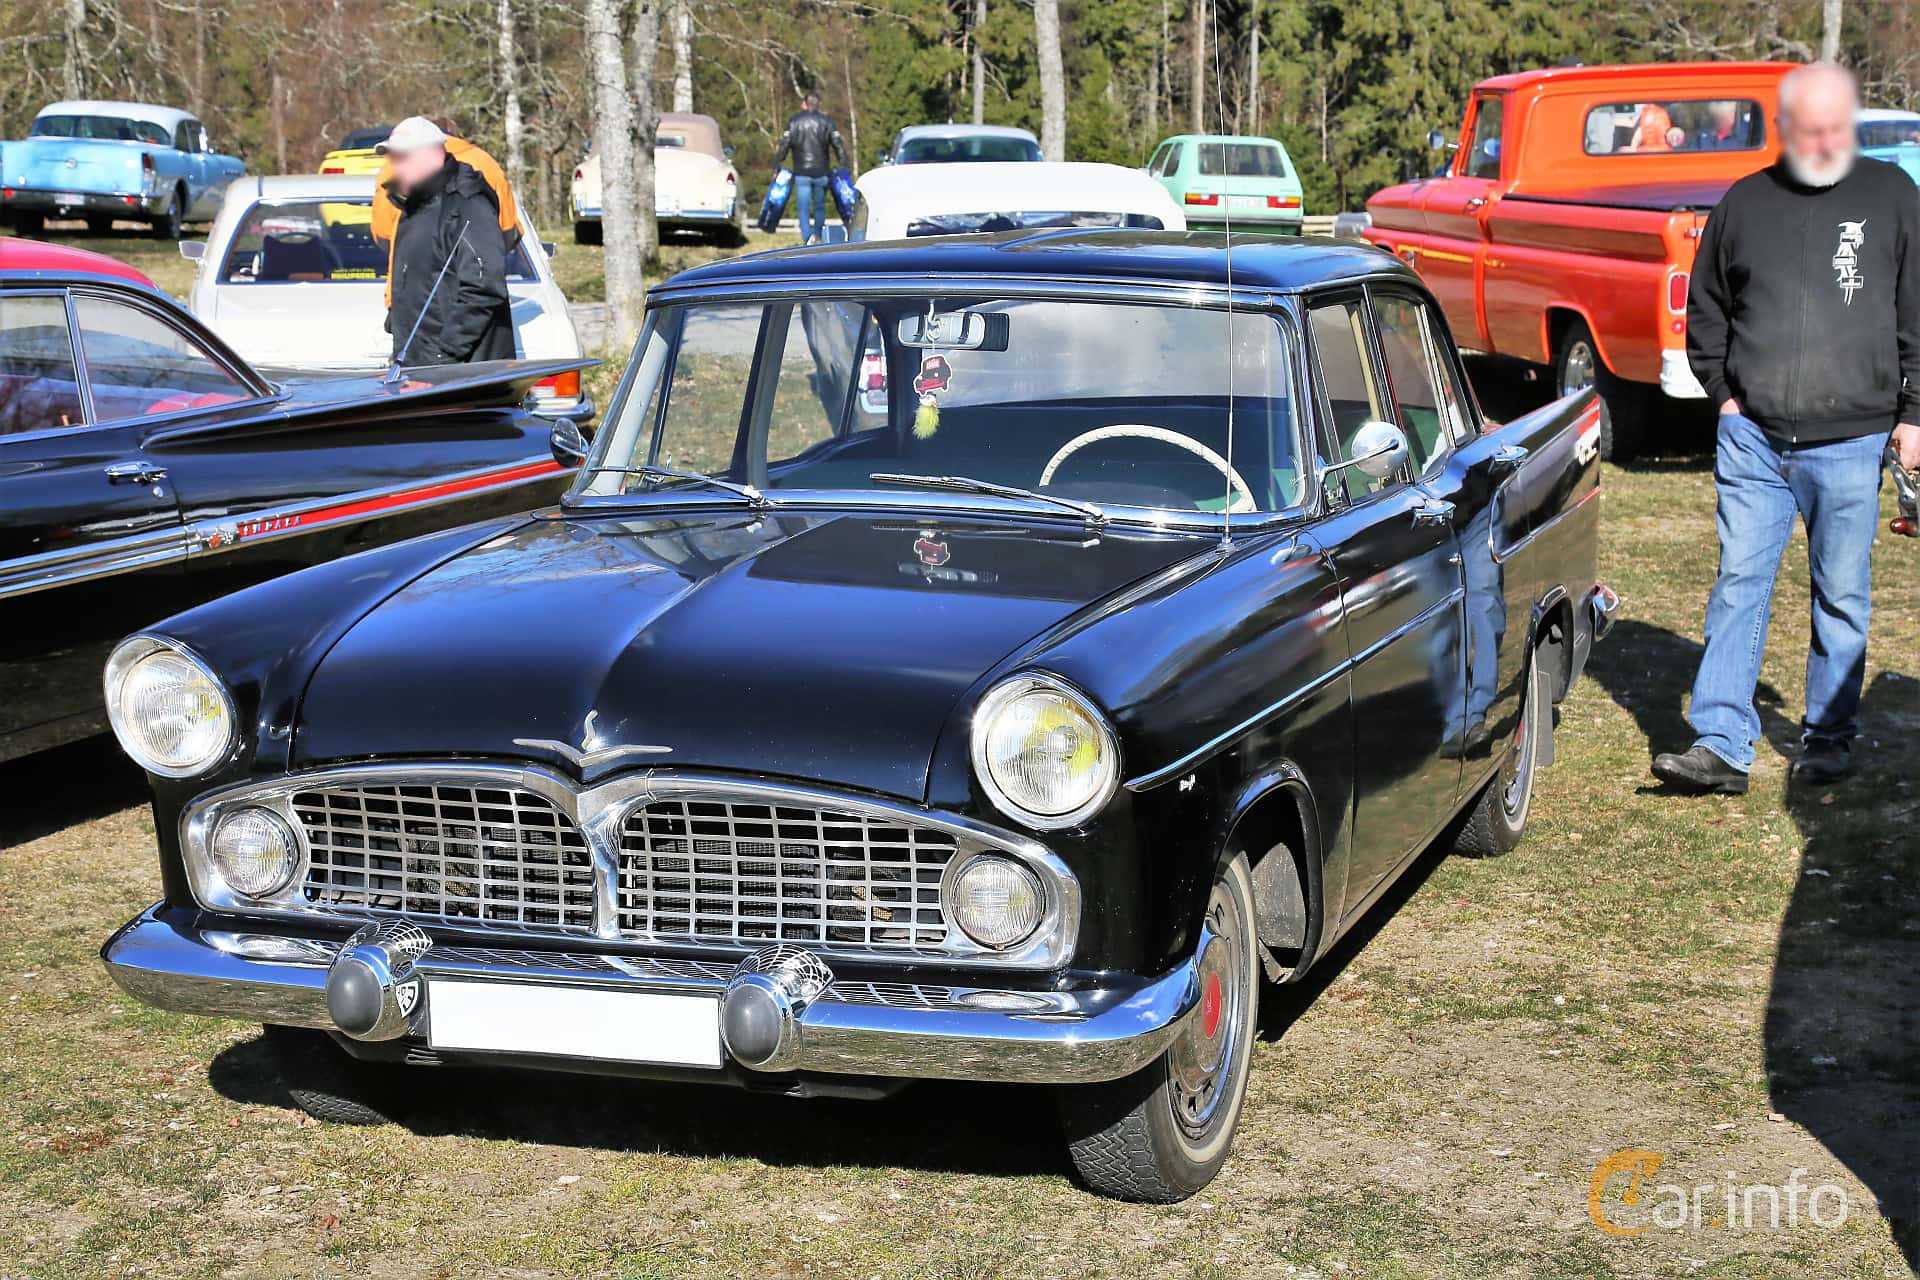 Simca Vedette 2.4 Manual, 84hp, 1958 at Uddevalla Veteranbilsmarknad Backamo, Ljungsk 2019